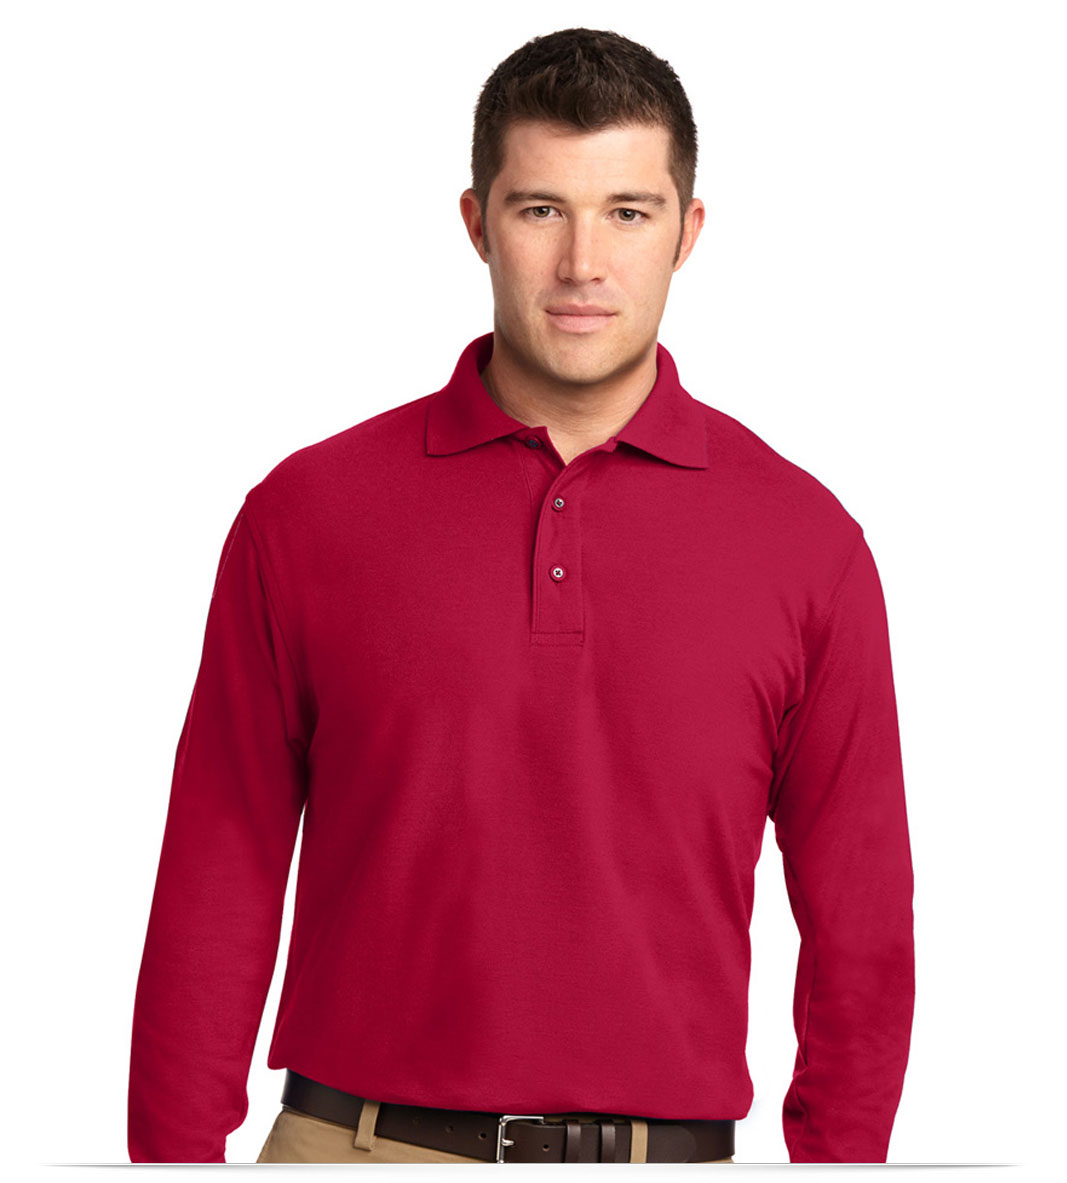 Custom Long Sleeve Polo Shirt